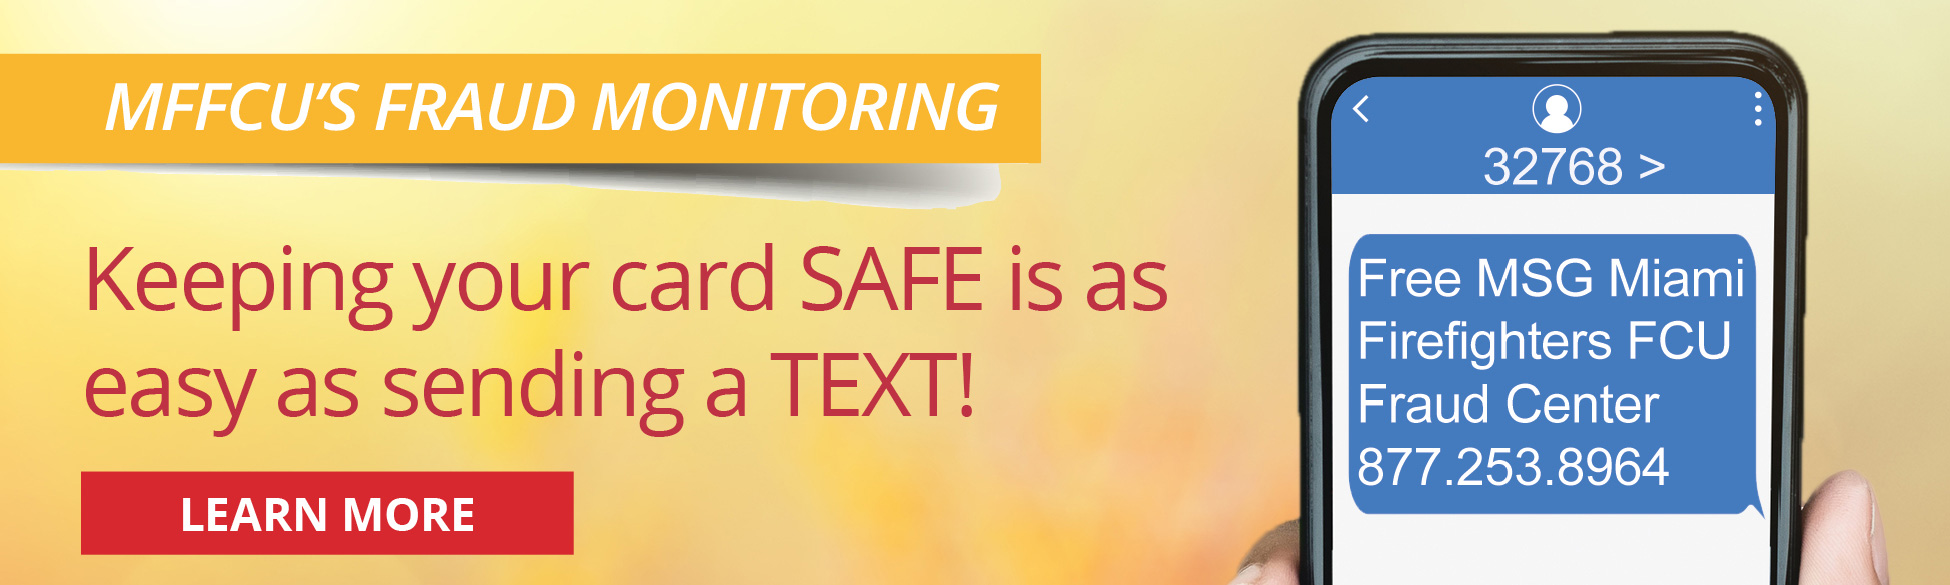 MFFCU'S FRAUD MONITORING. Keeping your card SAFE is as easy as sending a TEXT! LEARN MORE